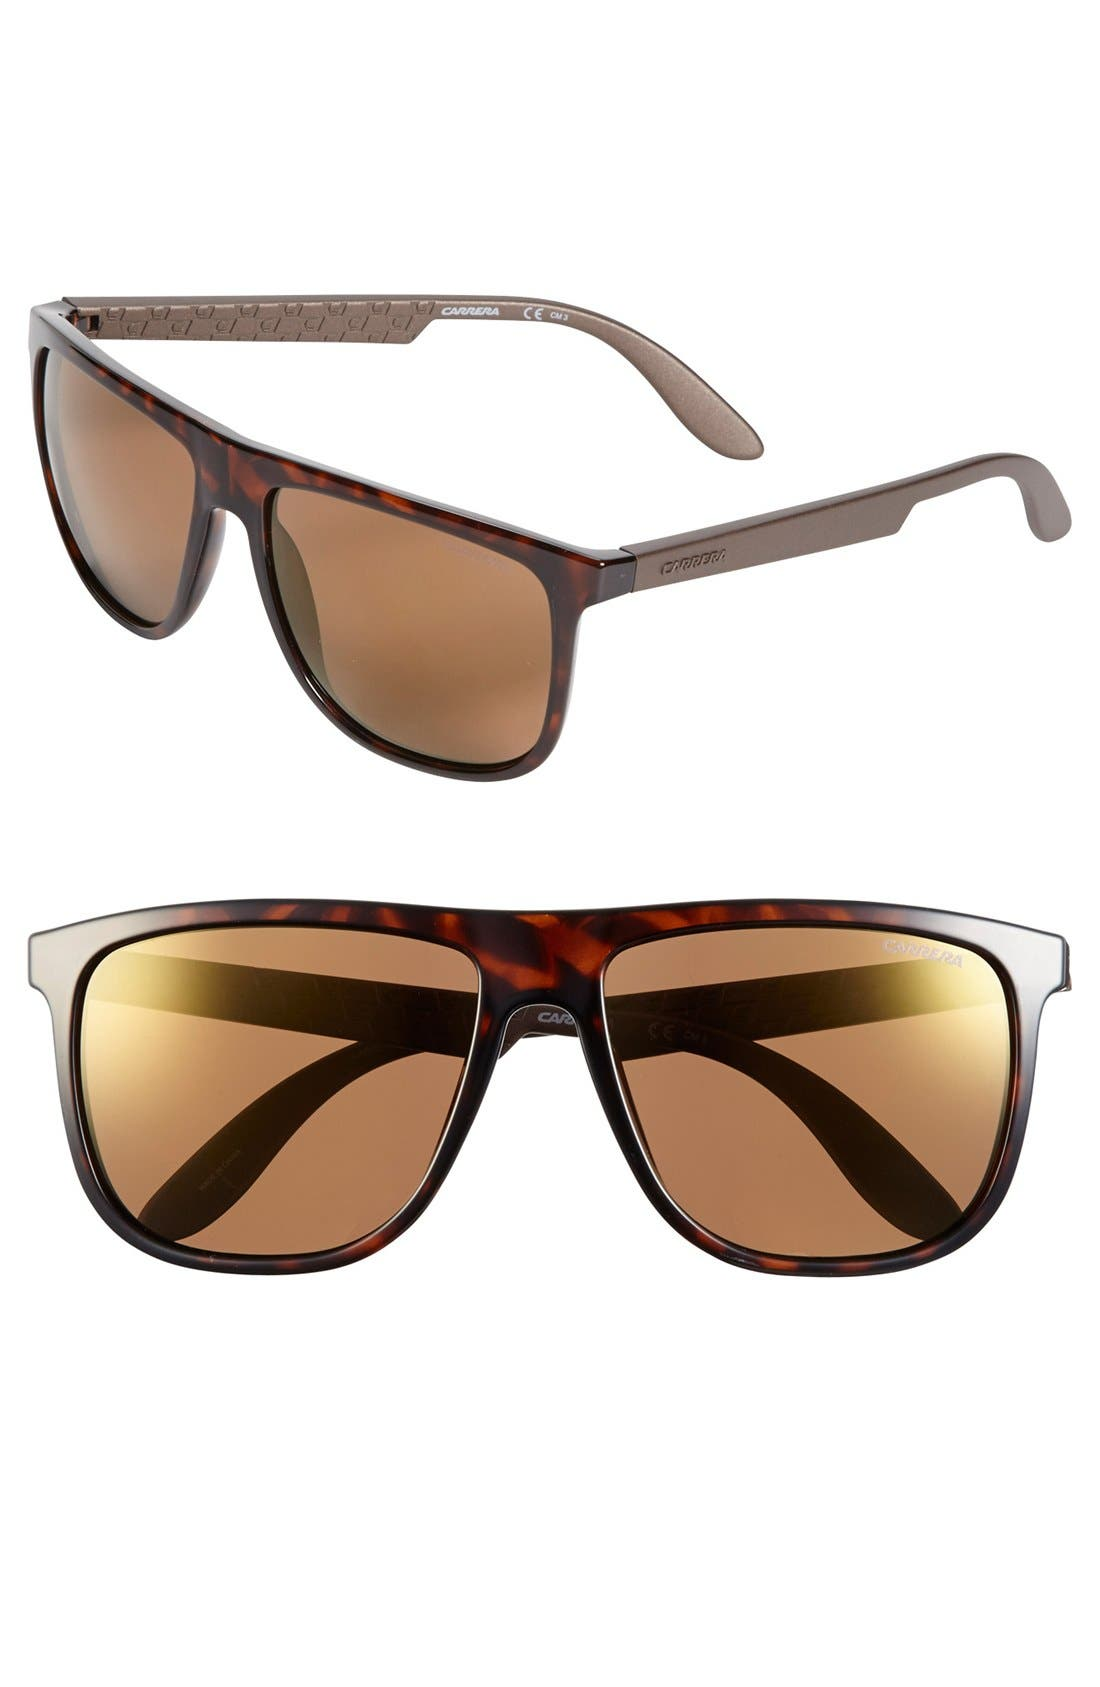 Carrera Eyewear '5003' Sunglasses